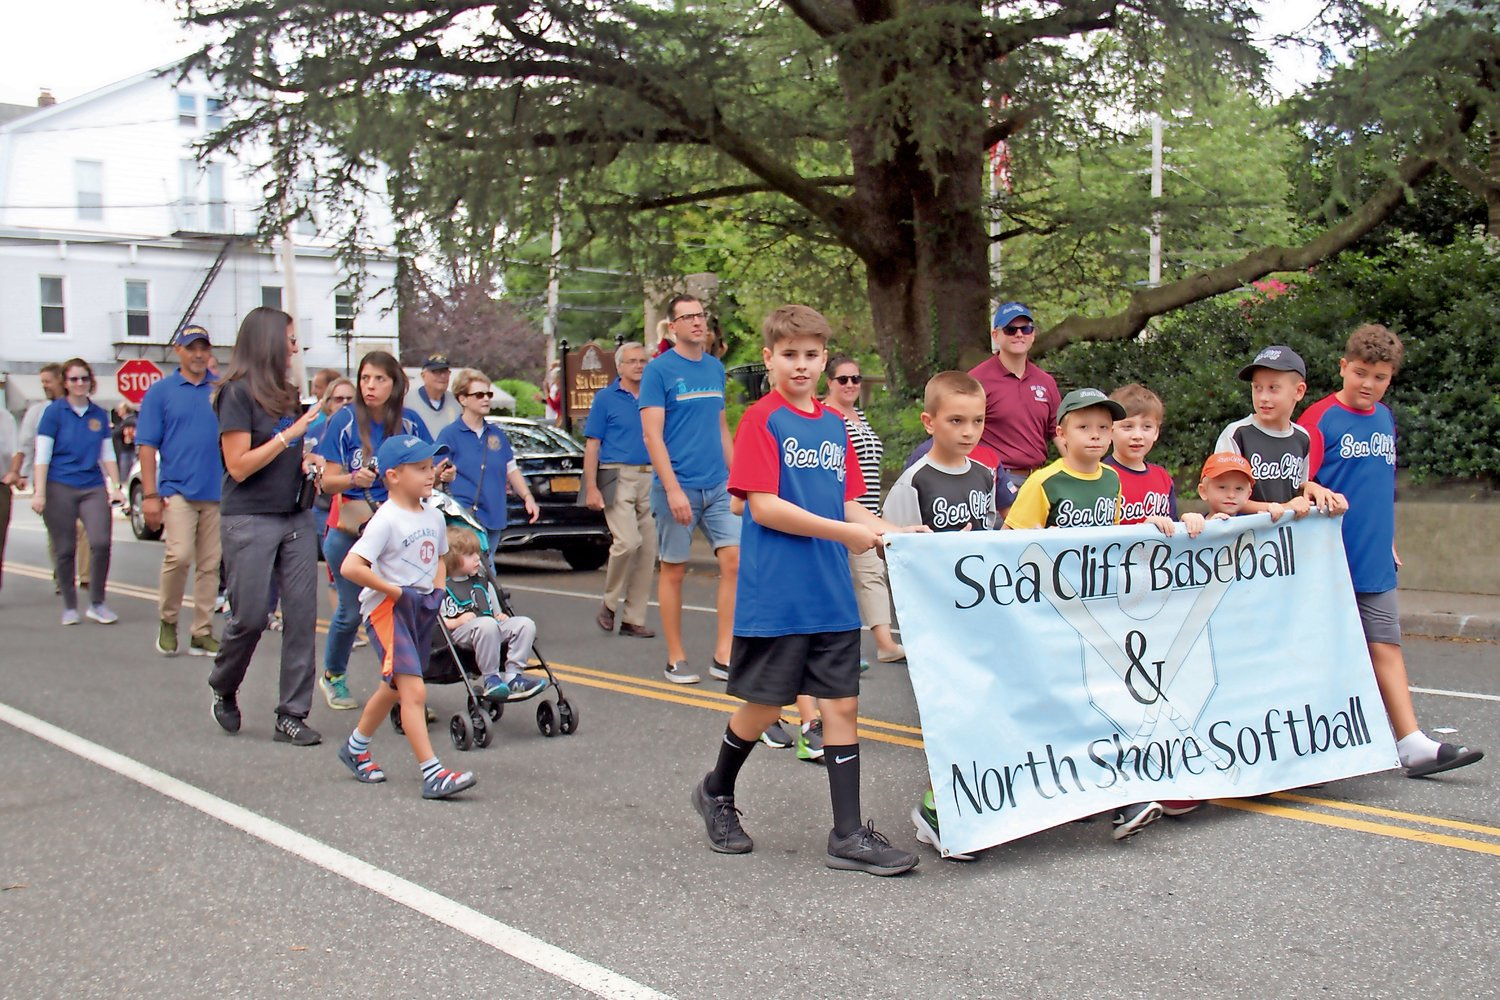 The Sea Cliff Baseball and North Shore Softball teams were among the marchers.